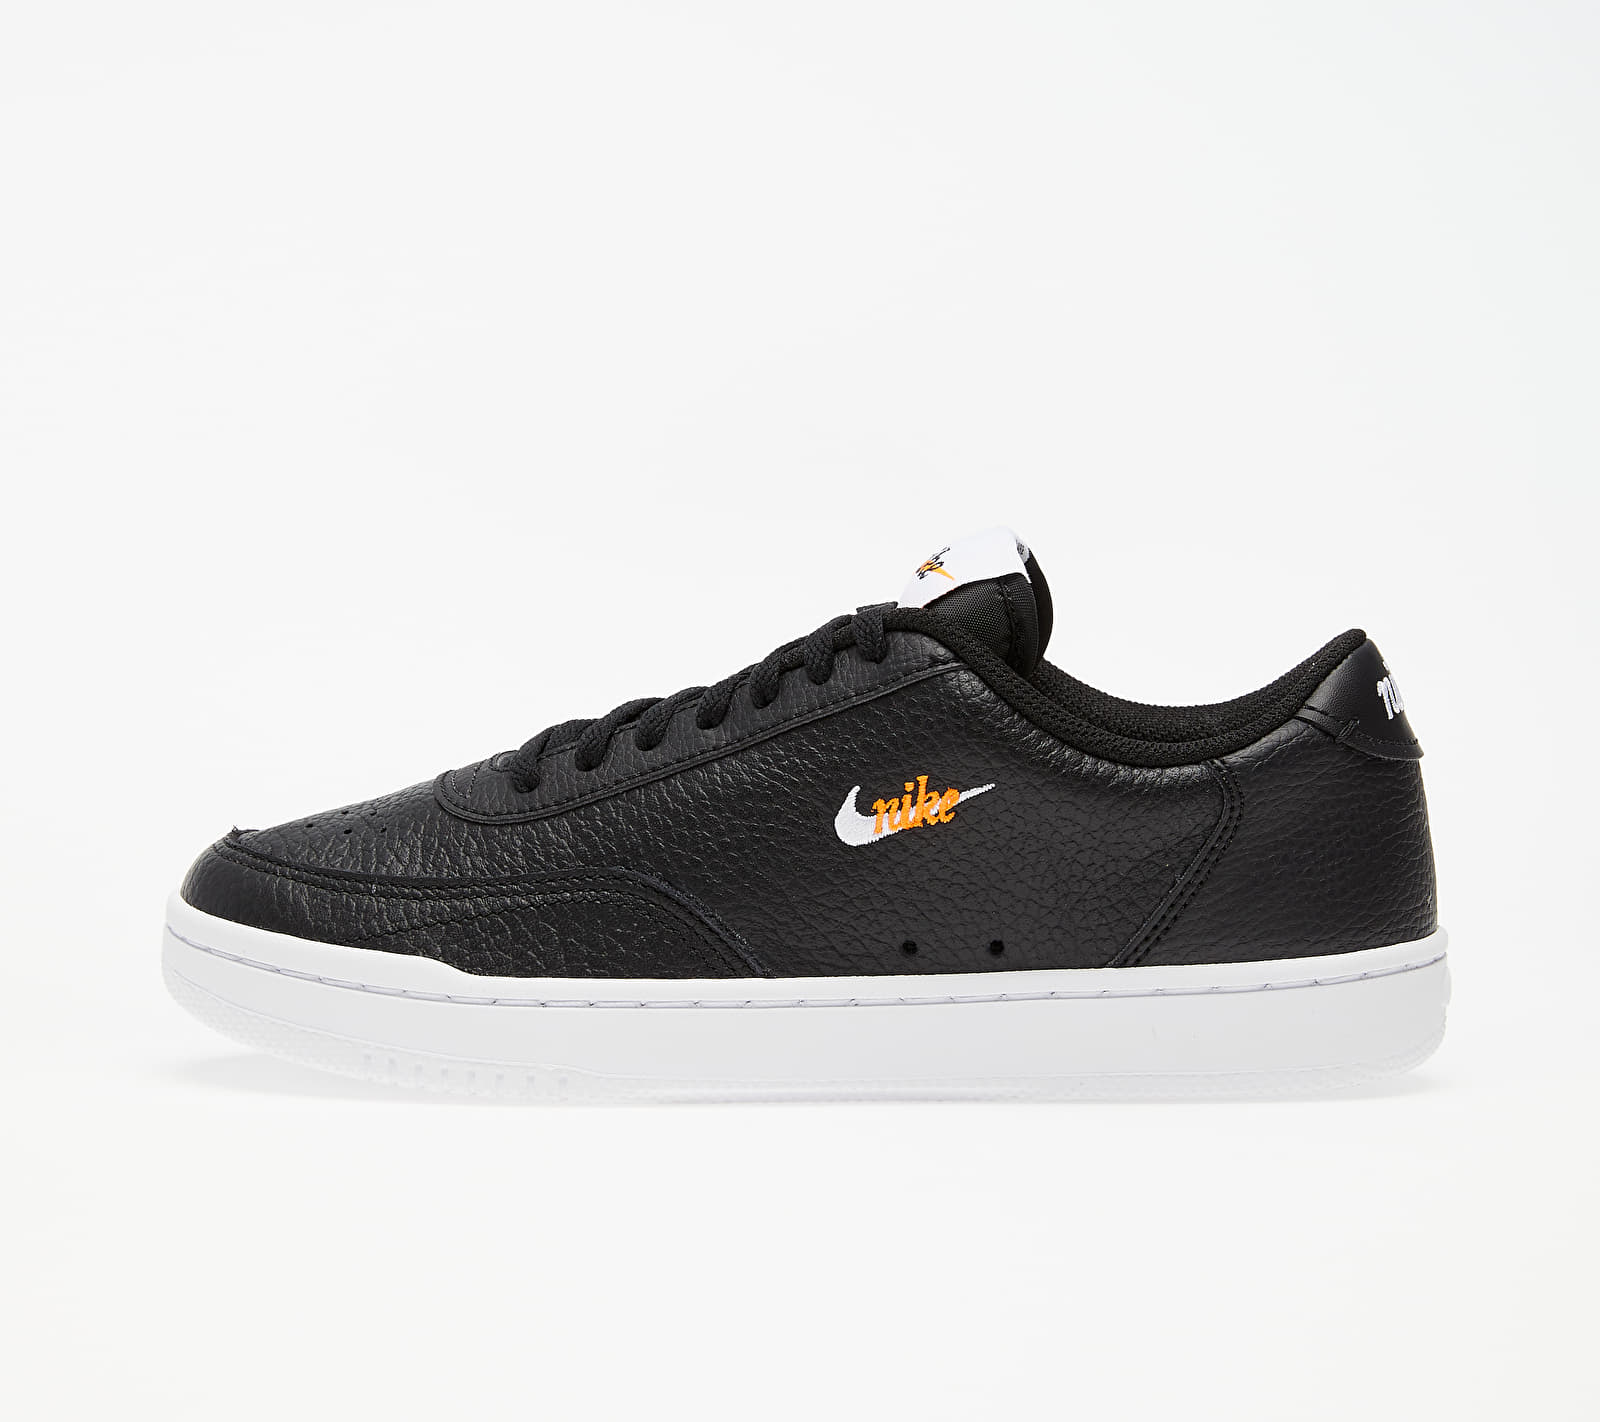 Nike Wmns Court Vintage Premium Black/ White-Total Orange EUR 40.5